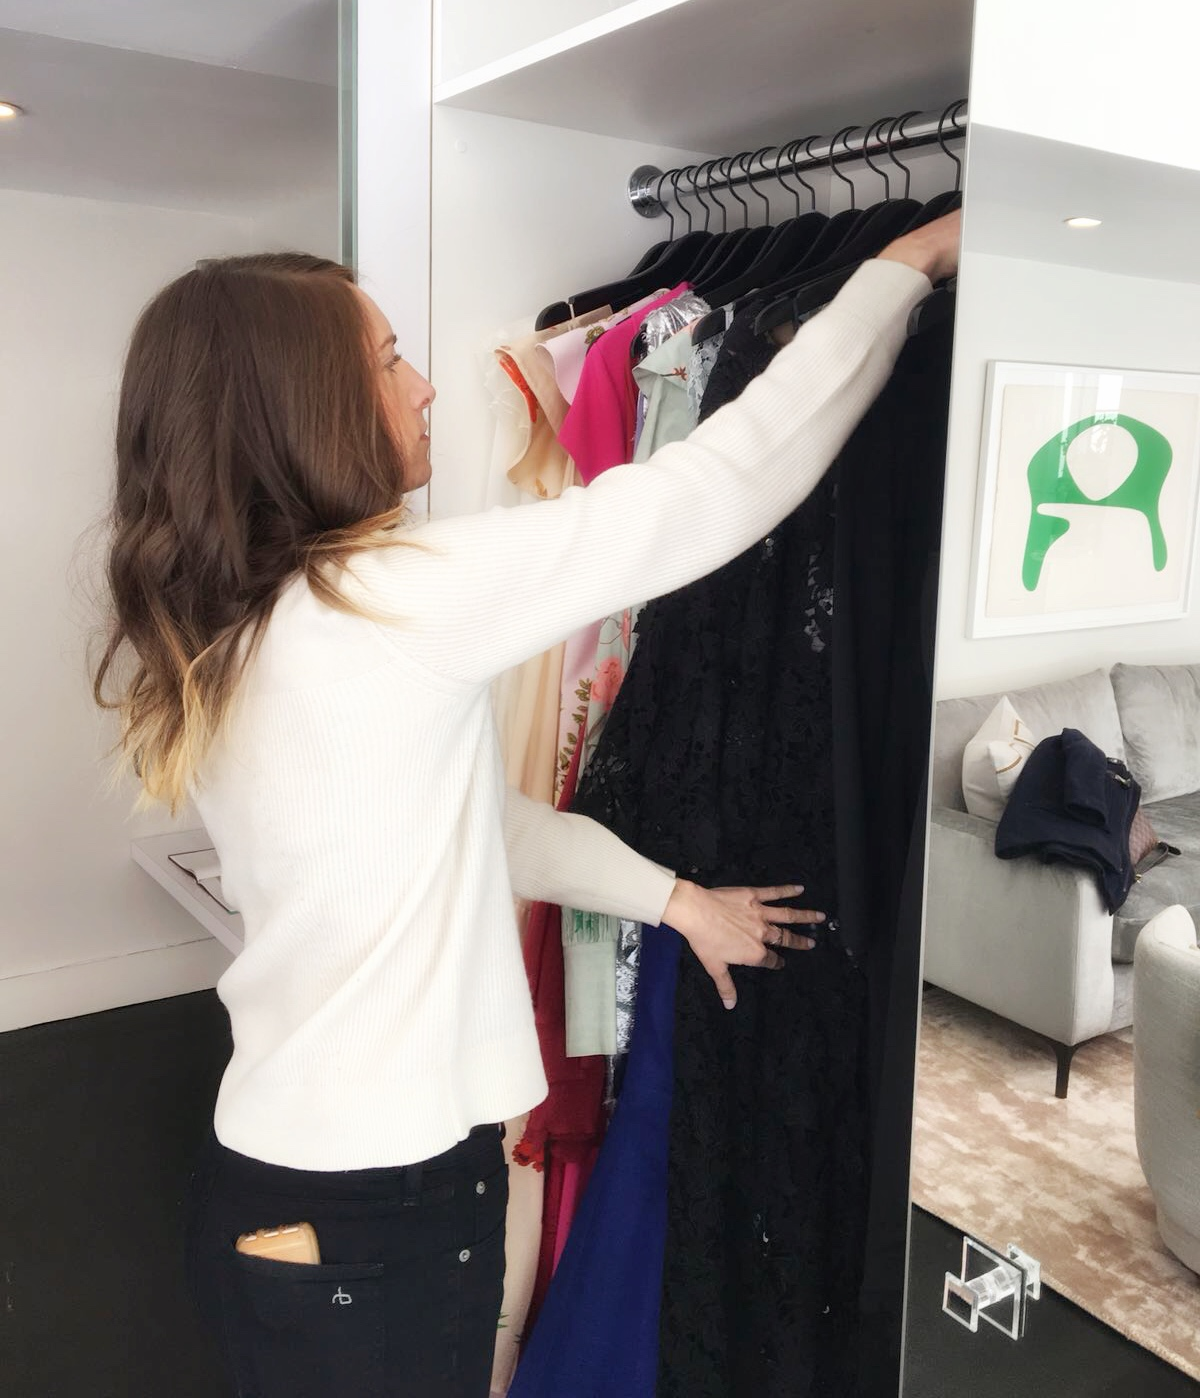 wardrobe_audit_allie_brandwein_wardrobe_interior_style_consultant_nyc.jpg